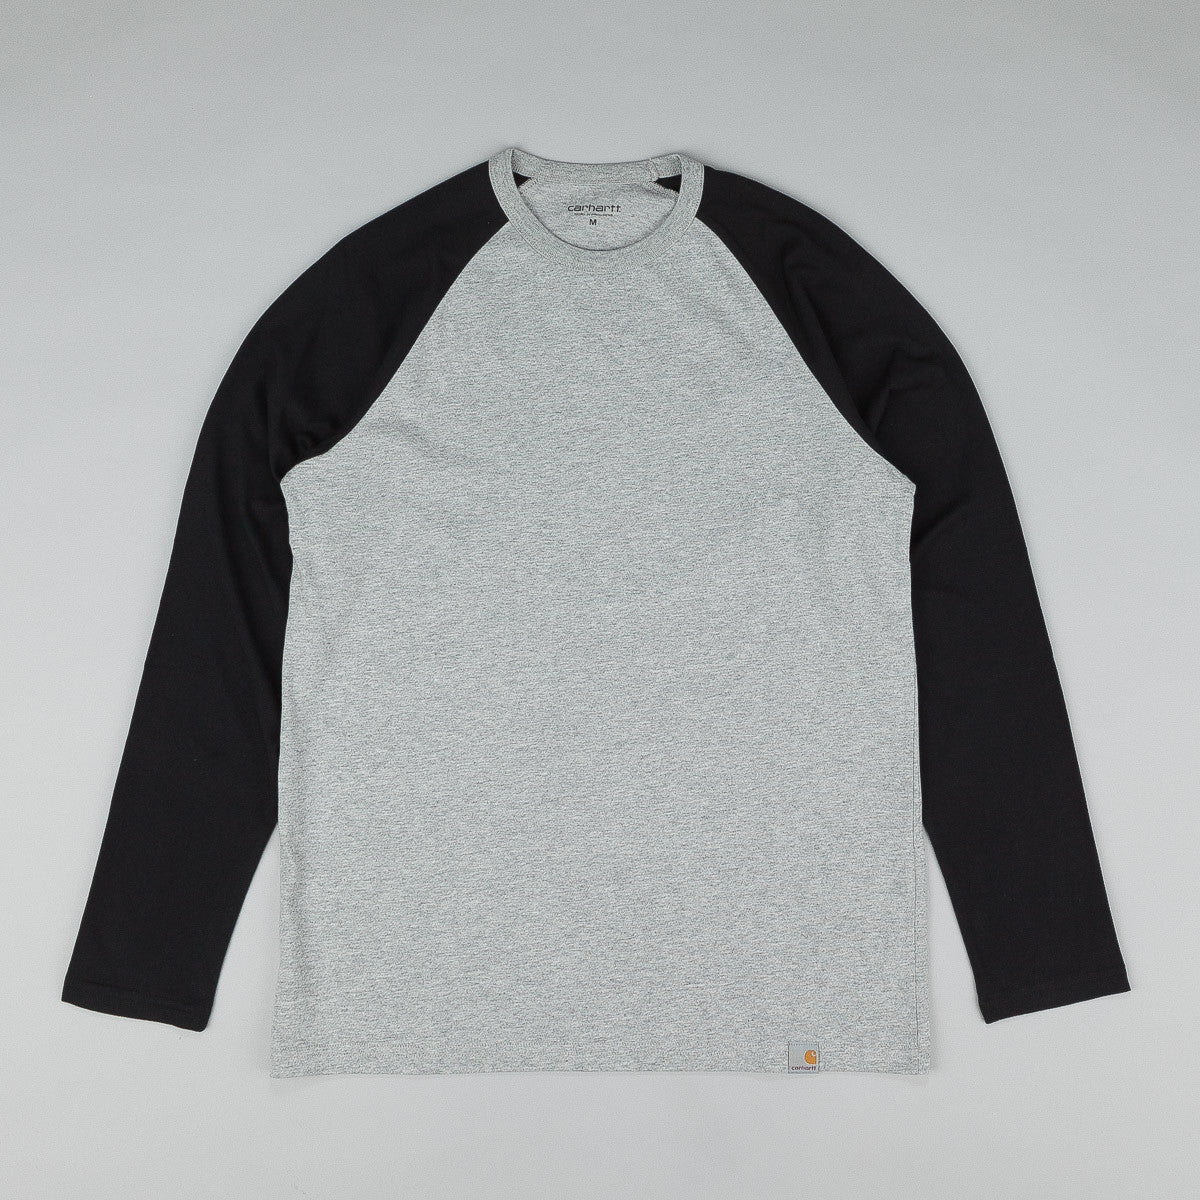 Carhartt Long Sleeve Dodgers T Shirt Grey Heather / Black